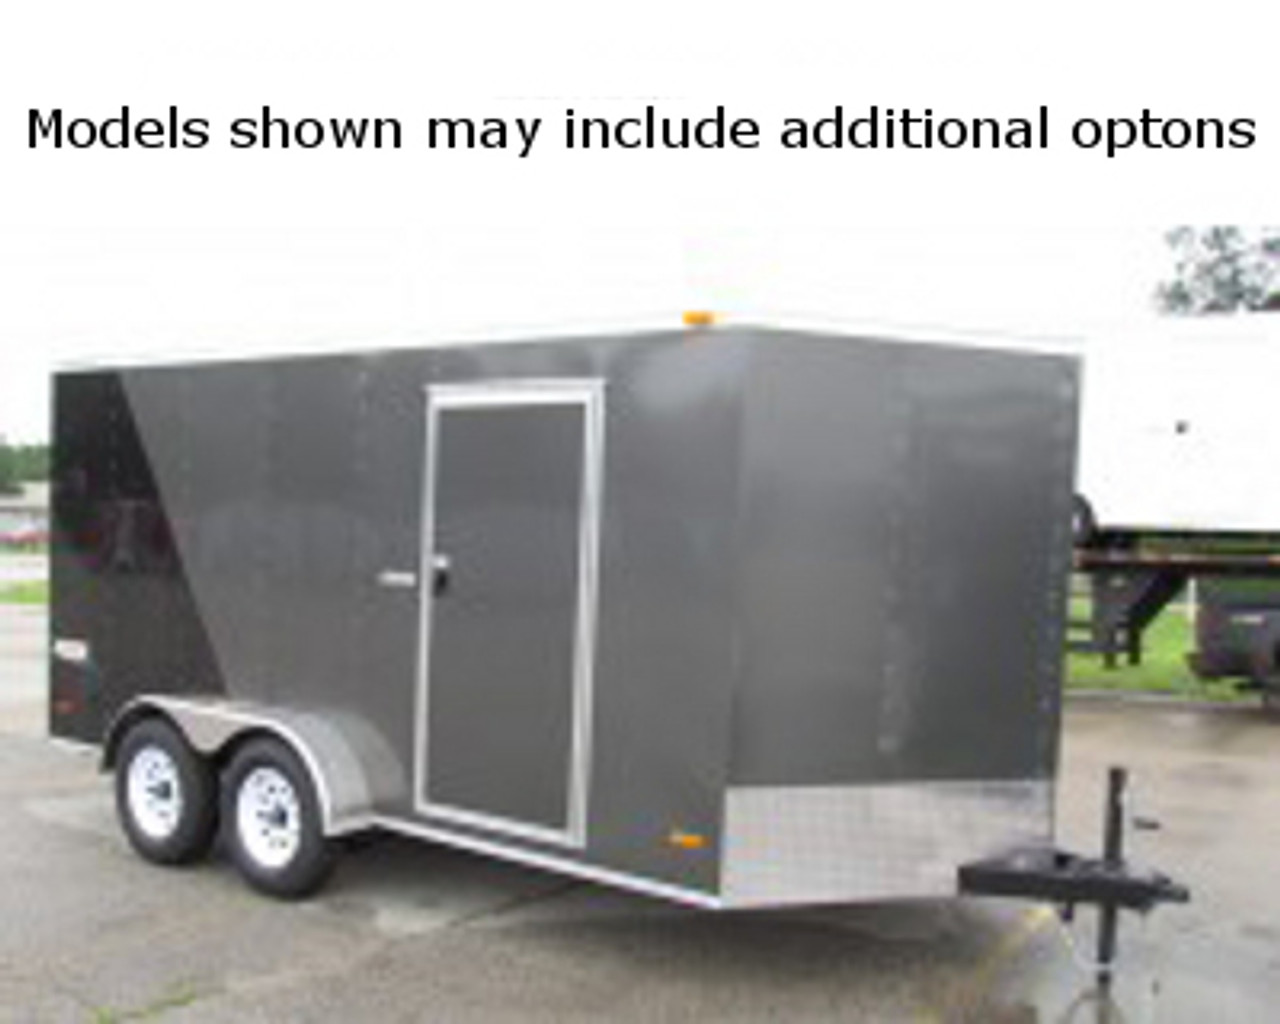 SC10218TA2D --- 8.5' X 18' Enclosed Tandem Trailer with Double Rear Doors - Bravo